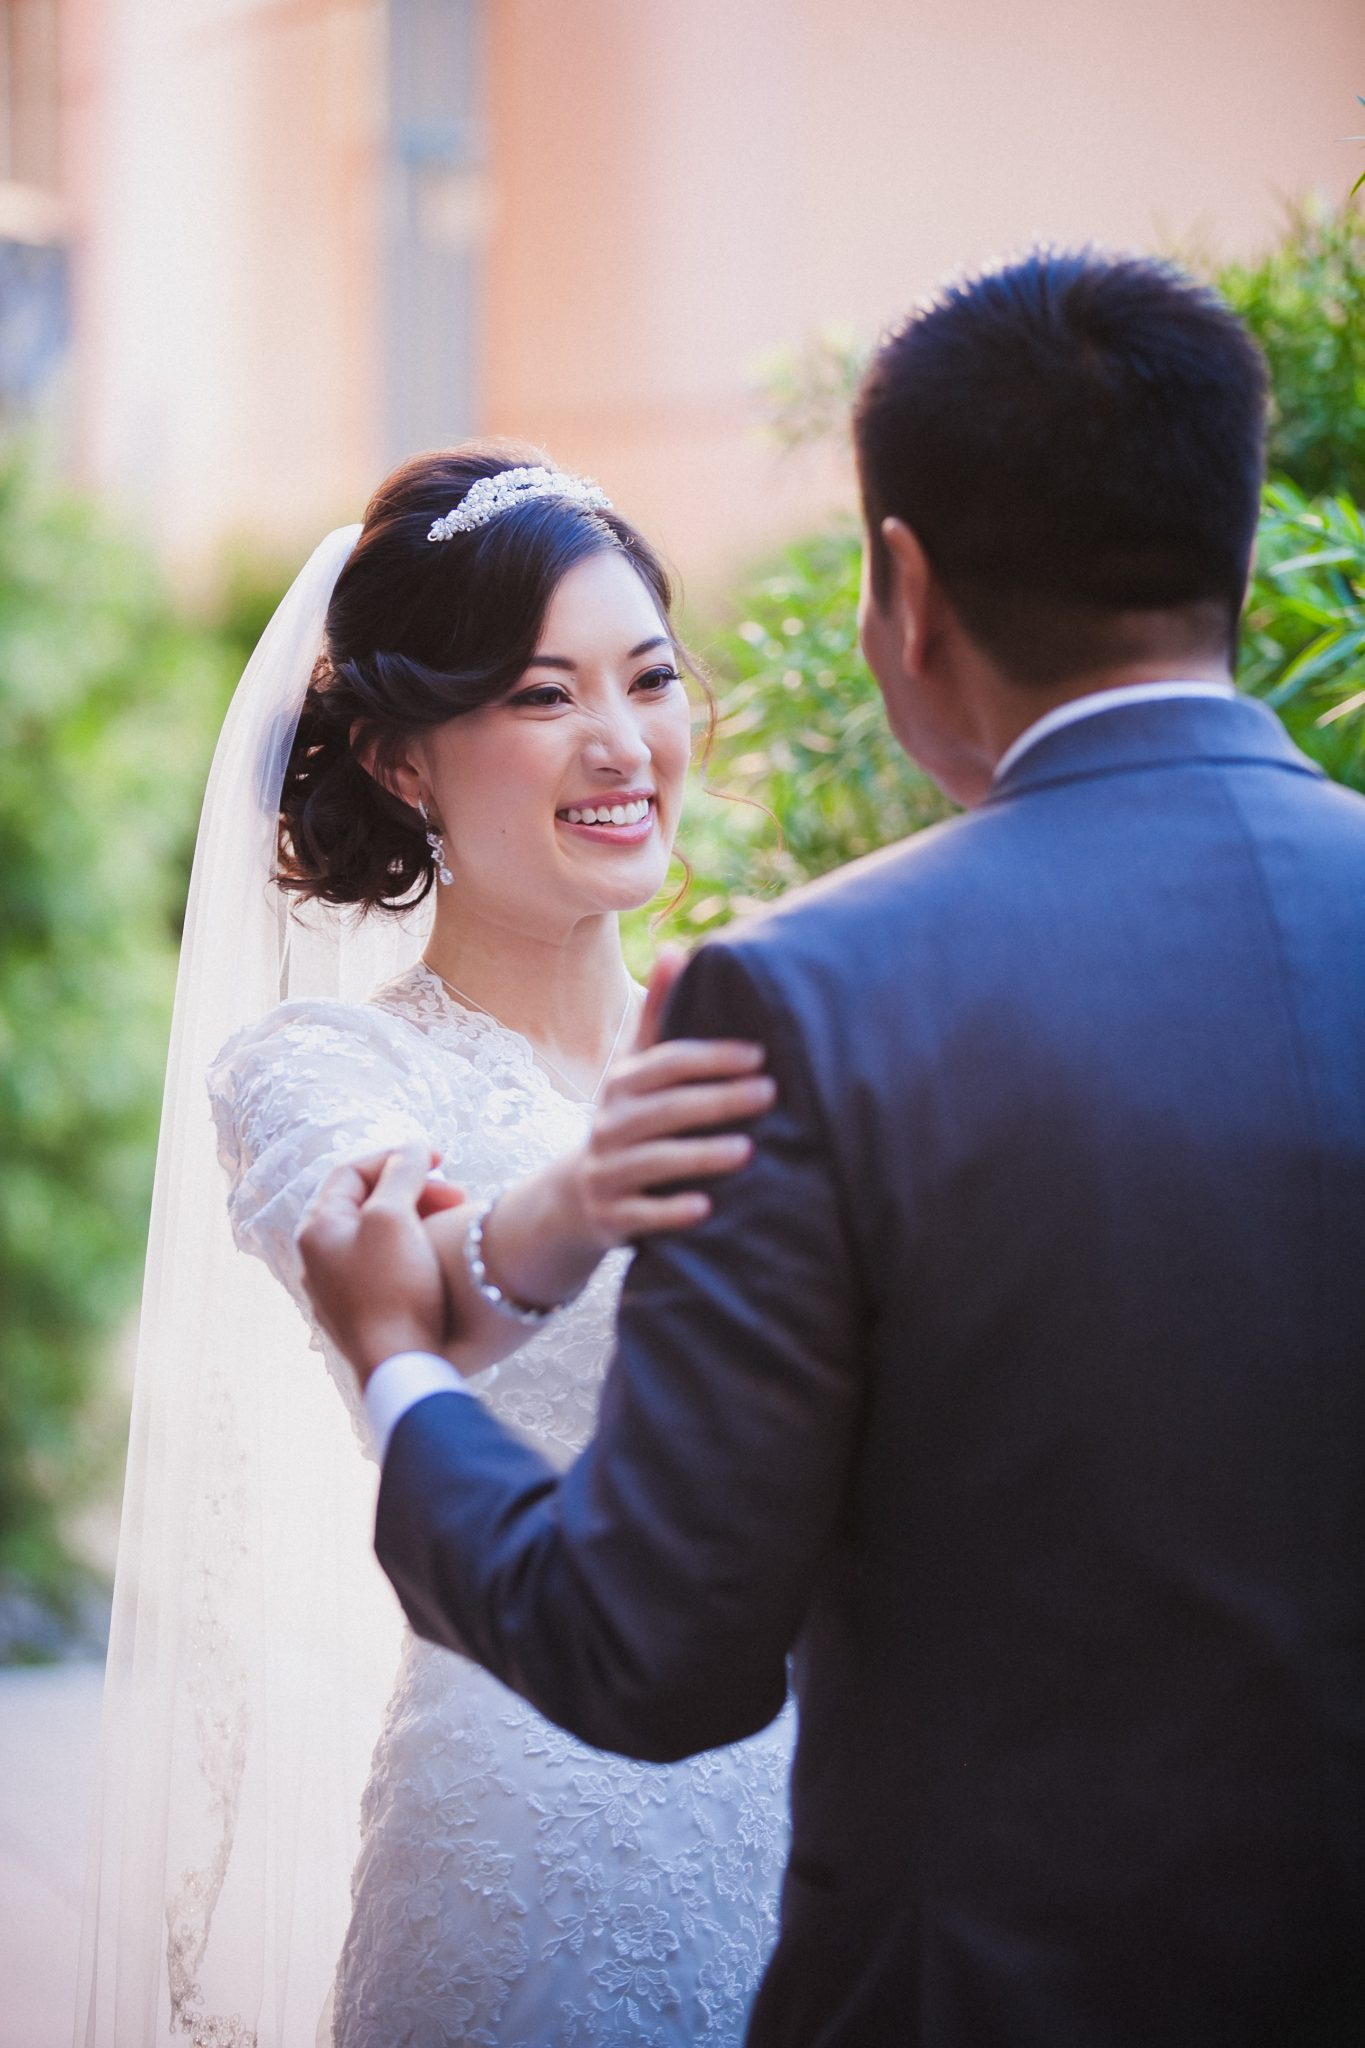 Bride smiles as she sees the groom during the first look